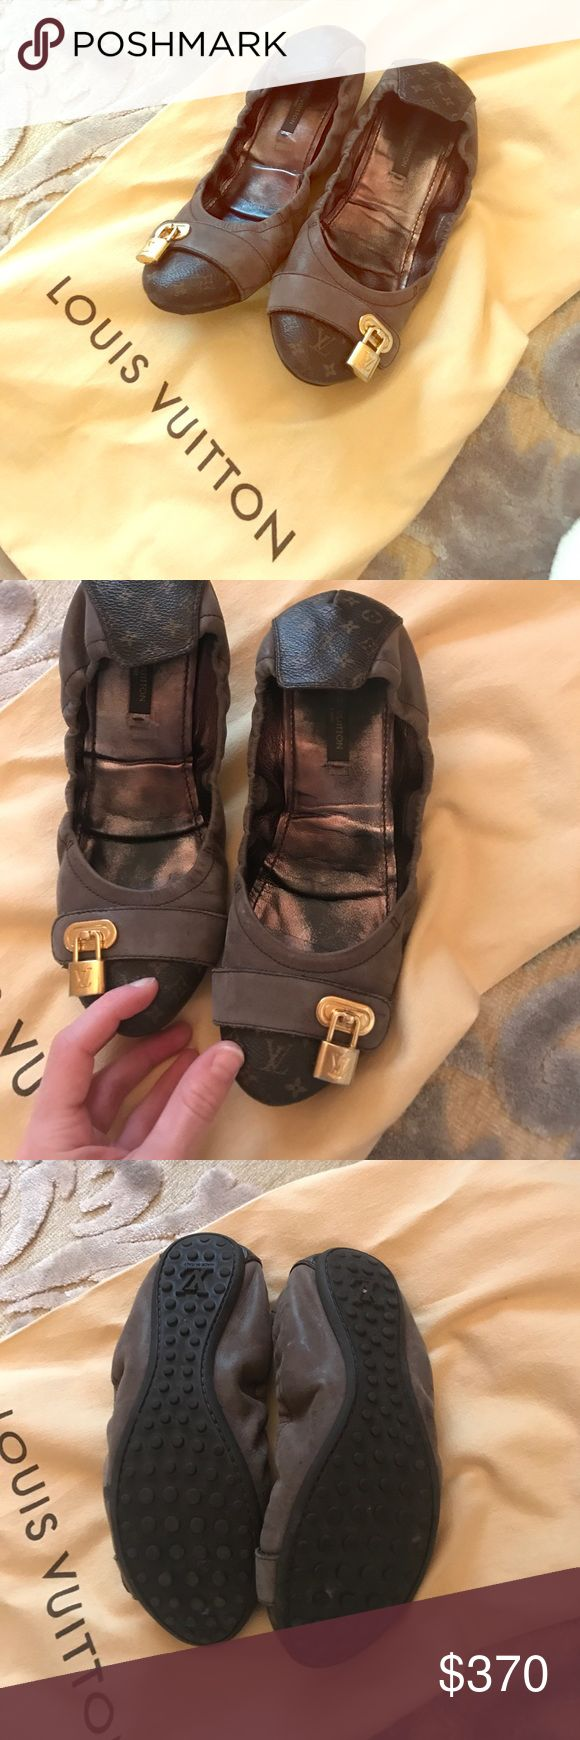 Louis Vuitton ballerina shoes Used authentic Louis Vuitton ballerina shoes brown with a gold lock come as seen in pics does not come with box or receipt Taking reaonable prices Louis Vuitton Shoes Flats & Loafers